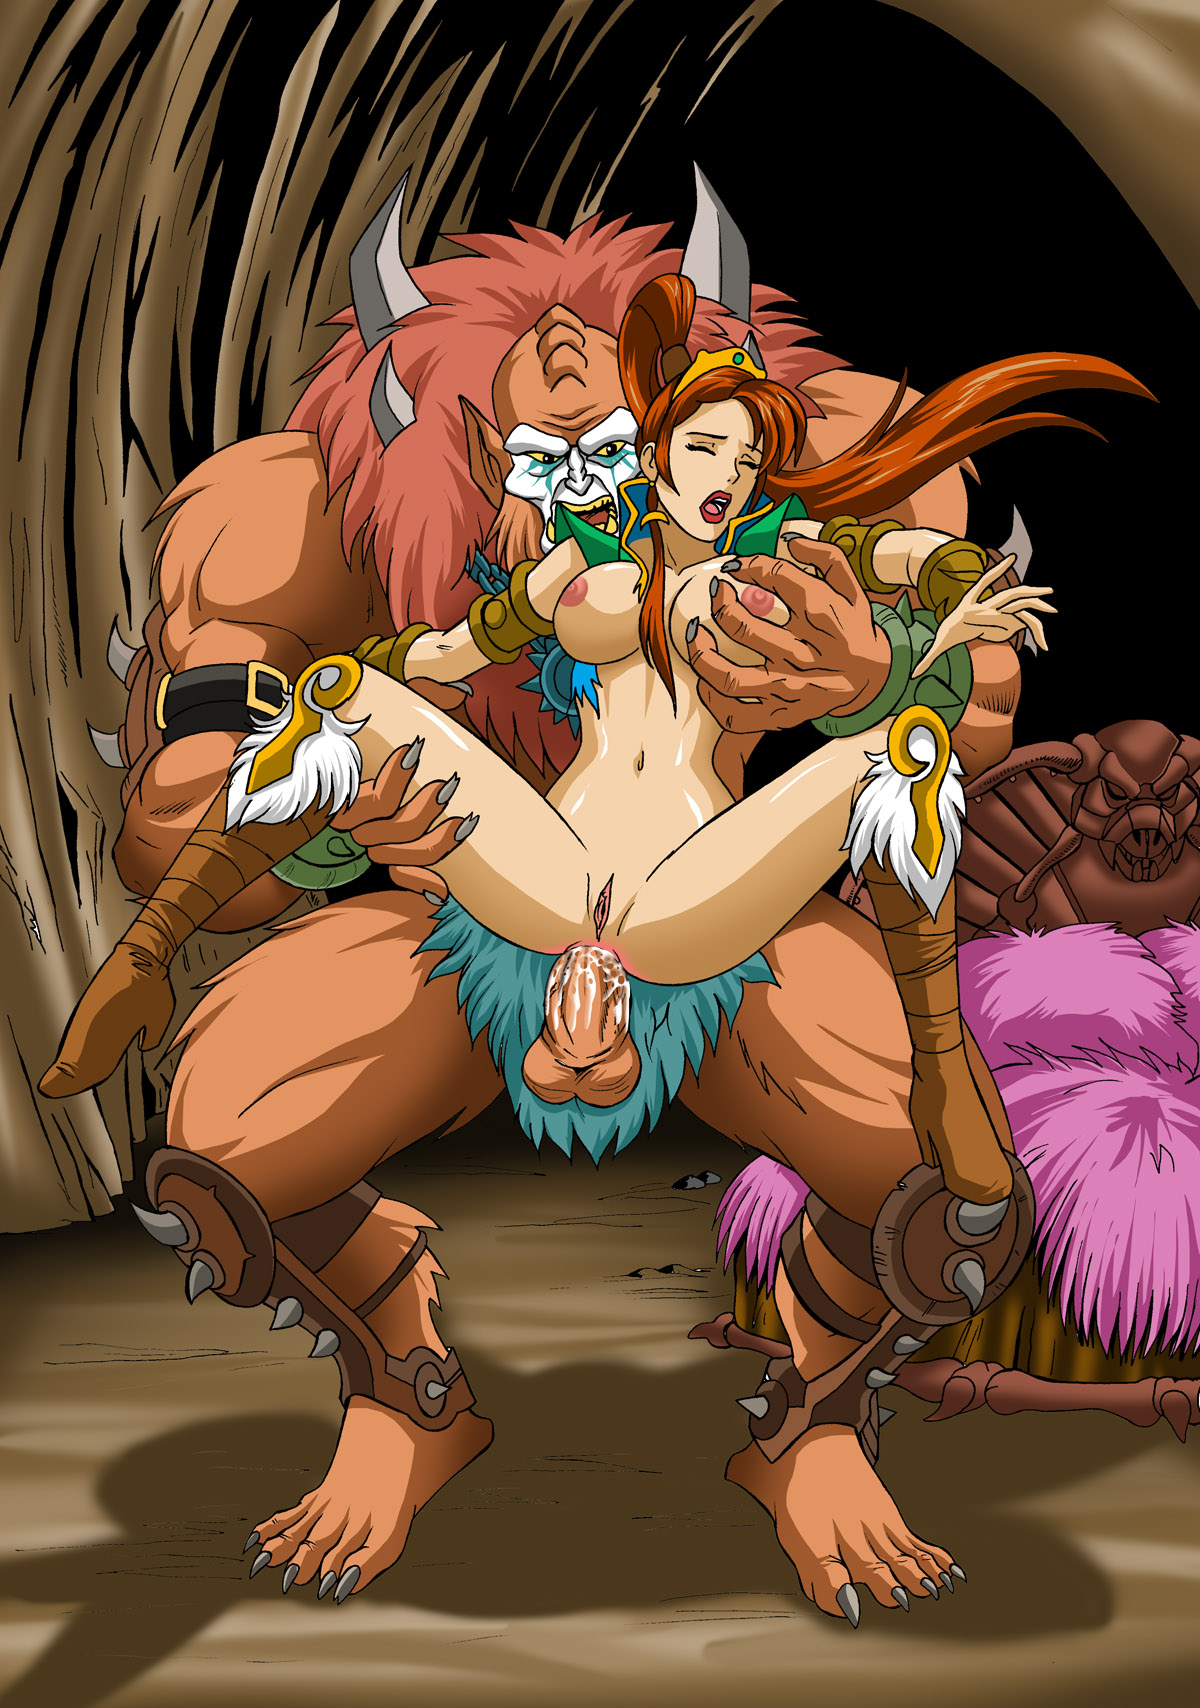 Monster sex cartoon hard sexual photo